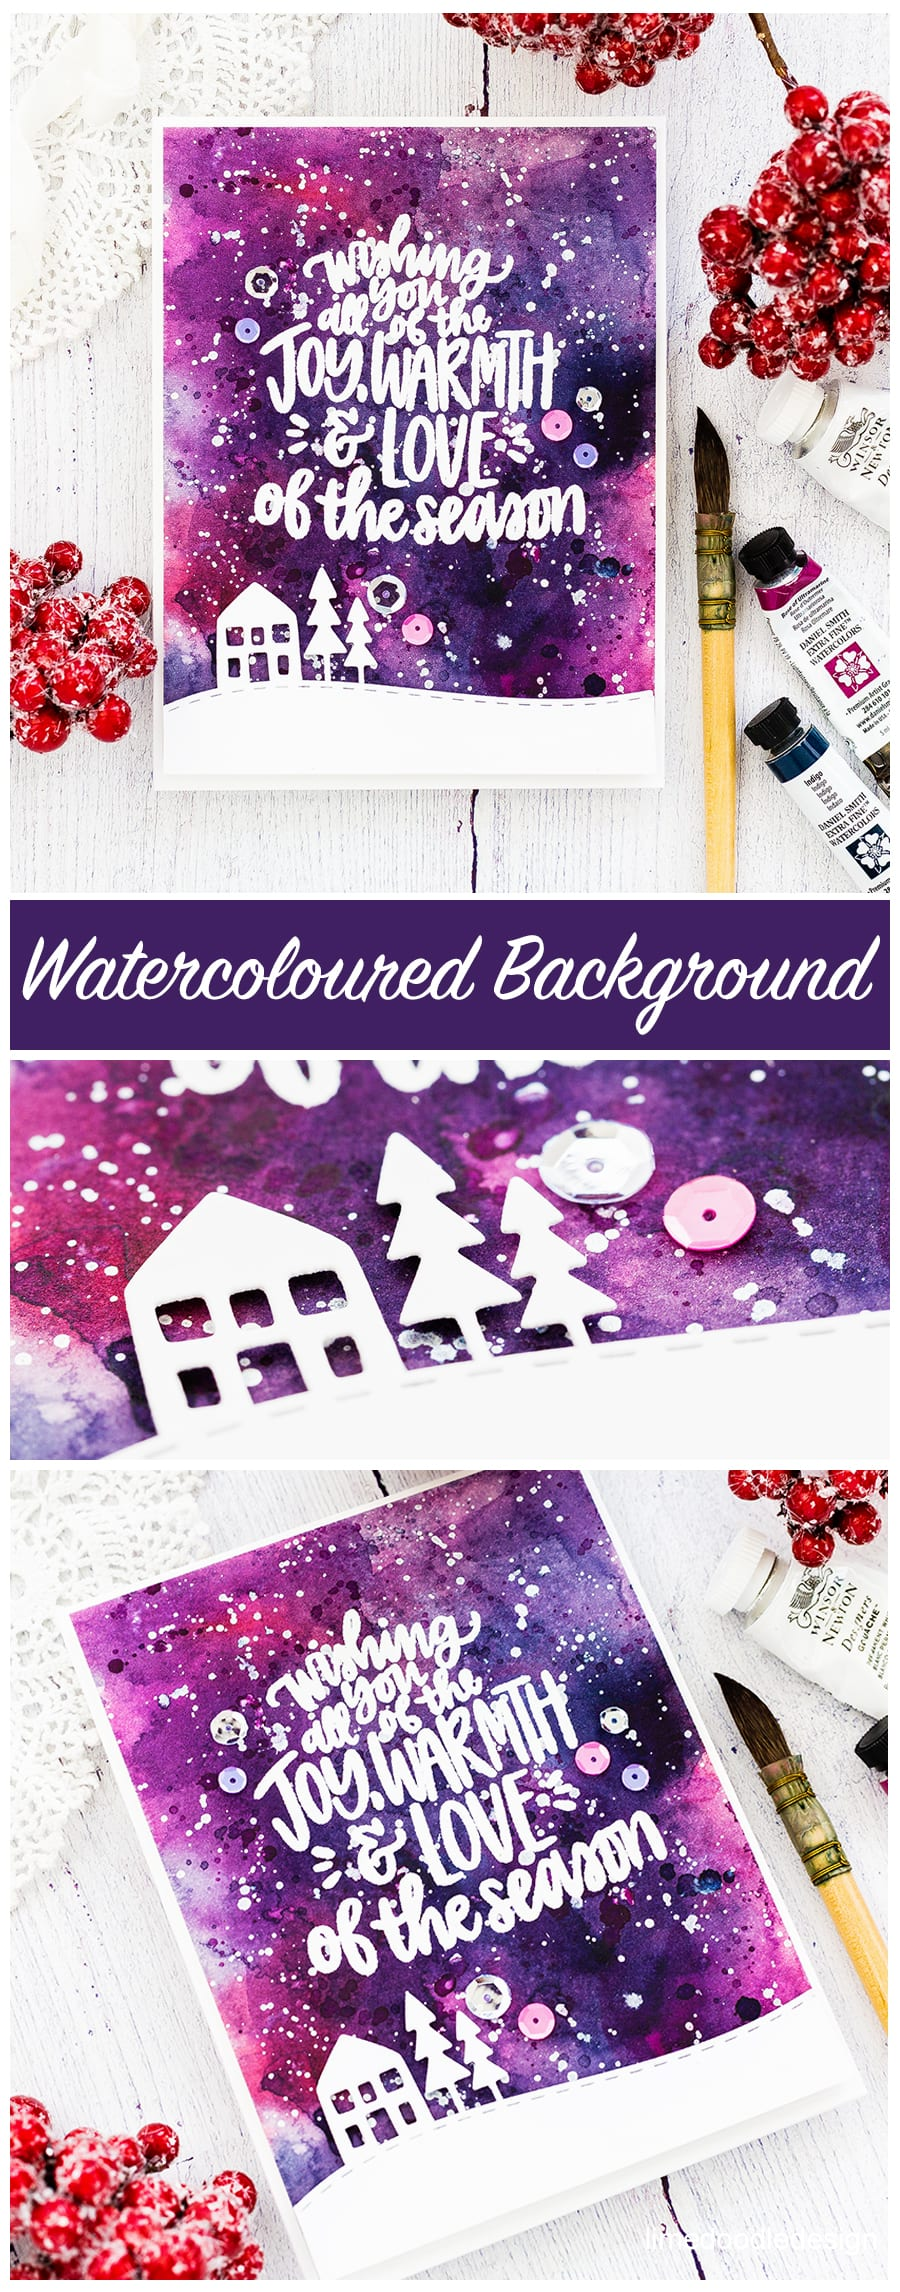 A fun watercoloured background showcases this beautiful Christmas sentiment. Handmade card by Debby Hughes. Find out more here: https://limedoodledesign.com/2017/12/joy-warmth-love-of-the-season/